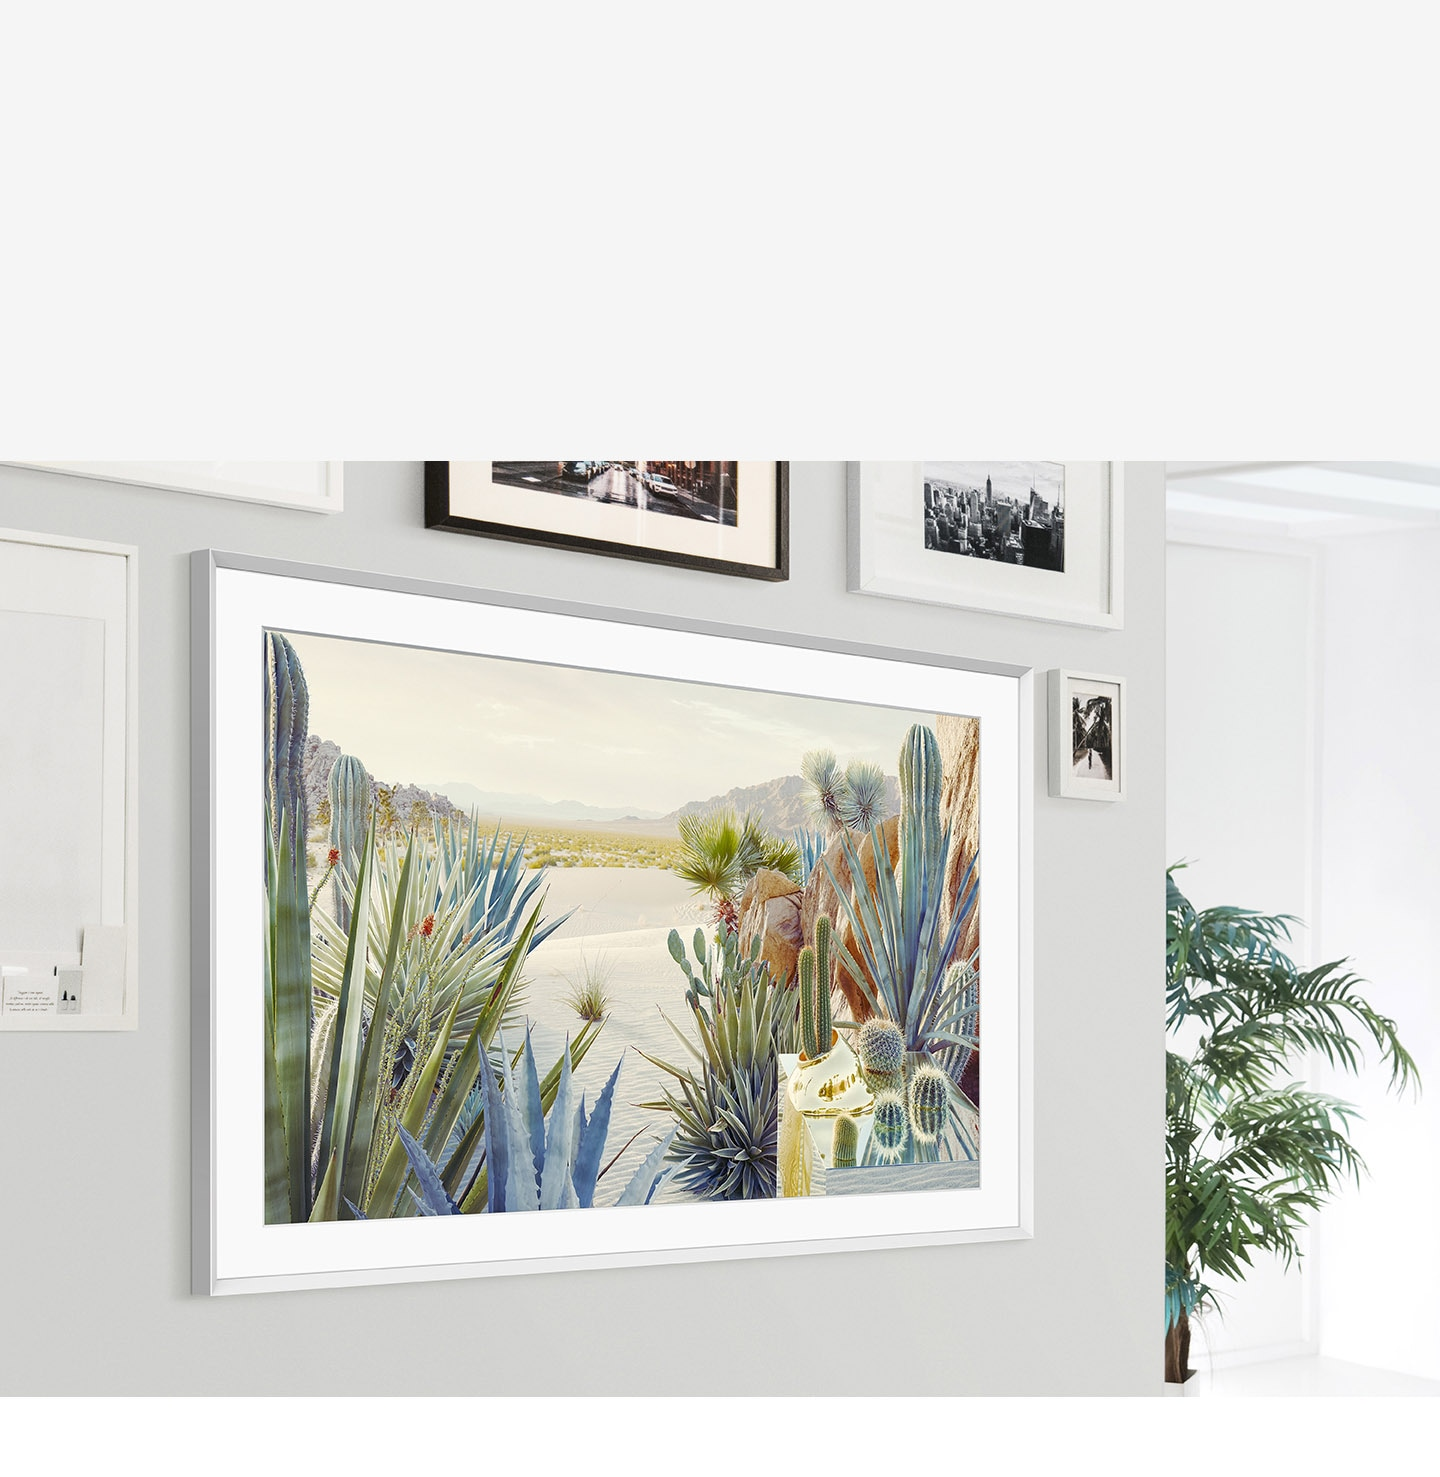 The Frame is mounted on the wall of a home interior and its modern frame design blends with the other picture frames on the wall.